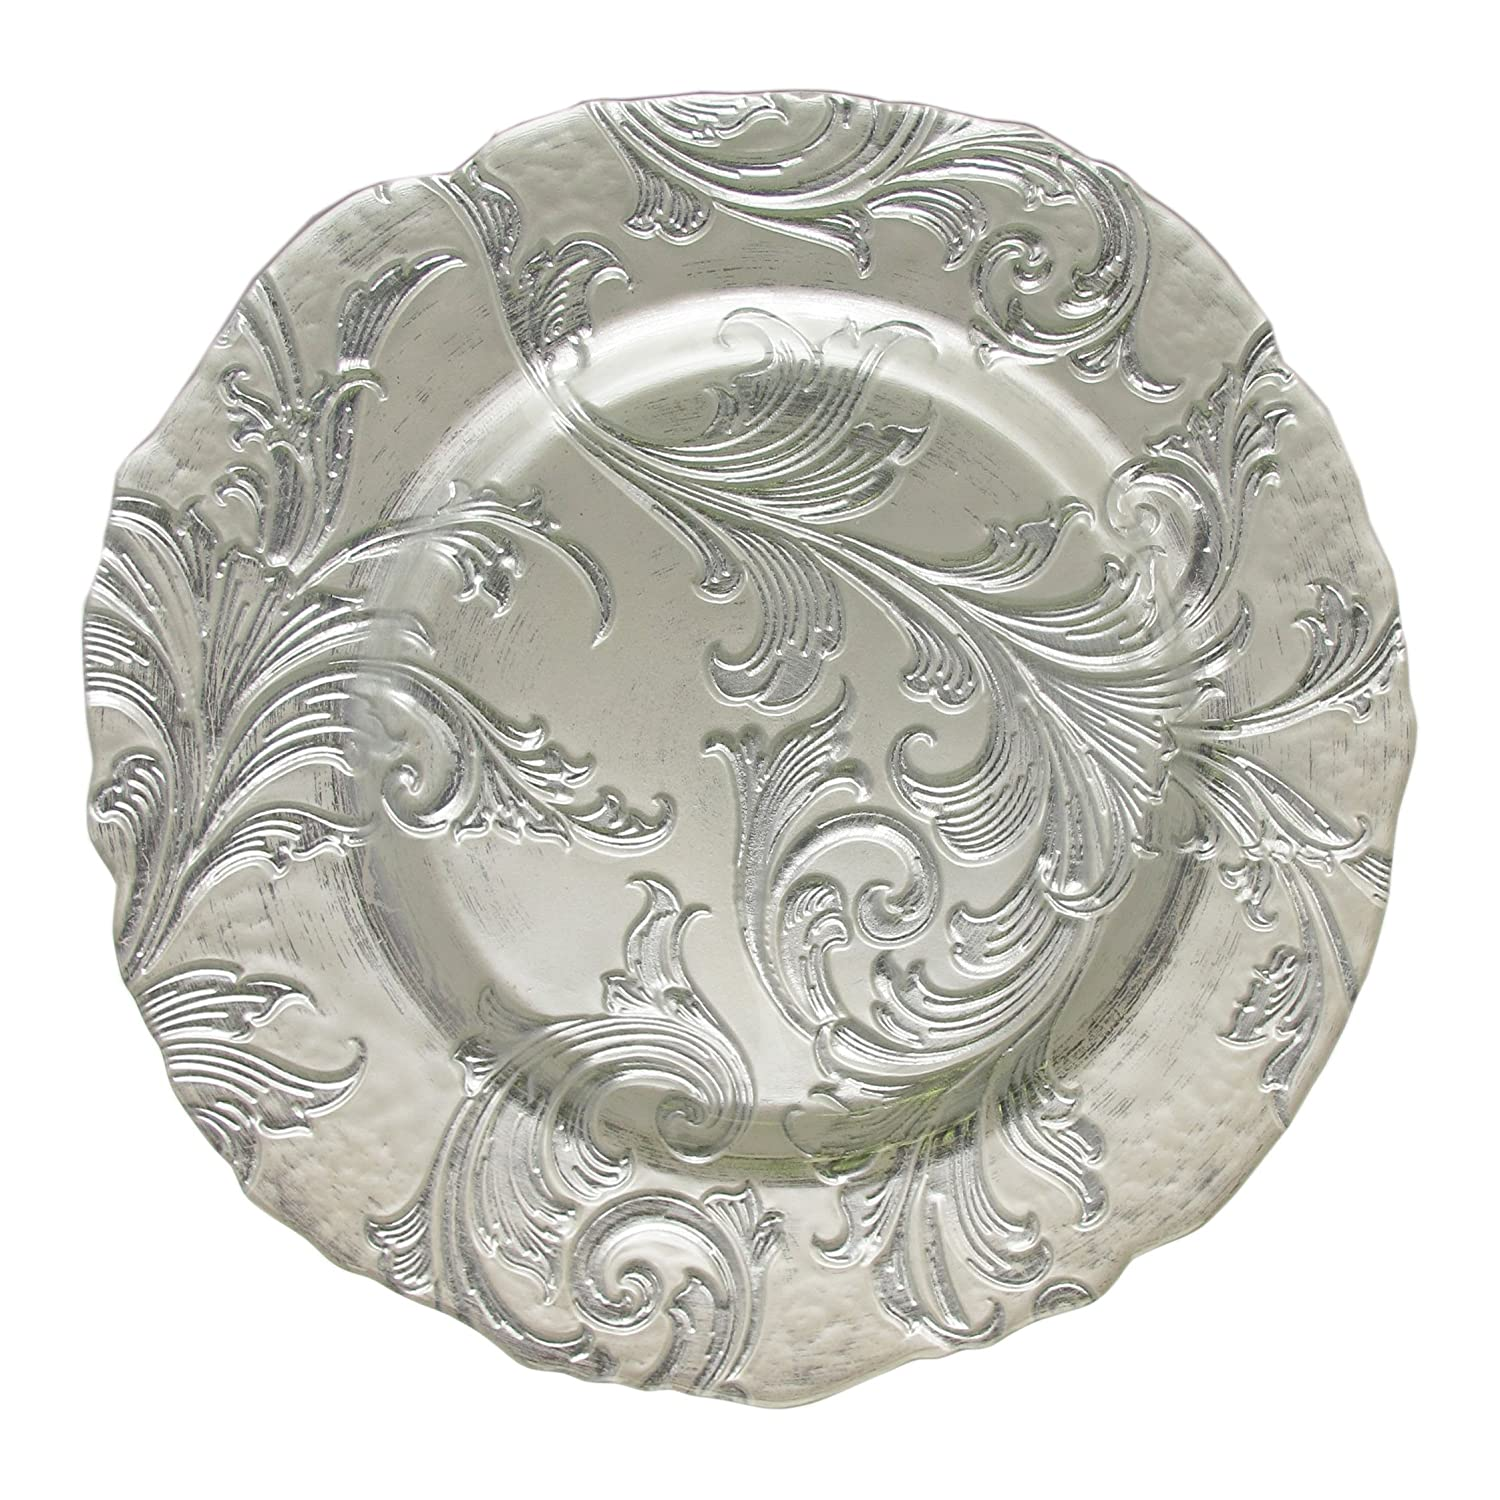 Substitute Ornate Silver Glass Charger Plates for the Sterling Silver Utility Trays